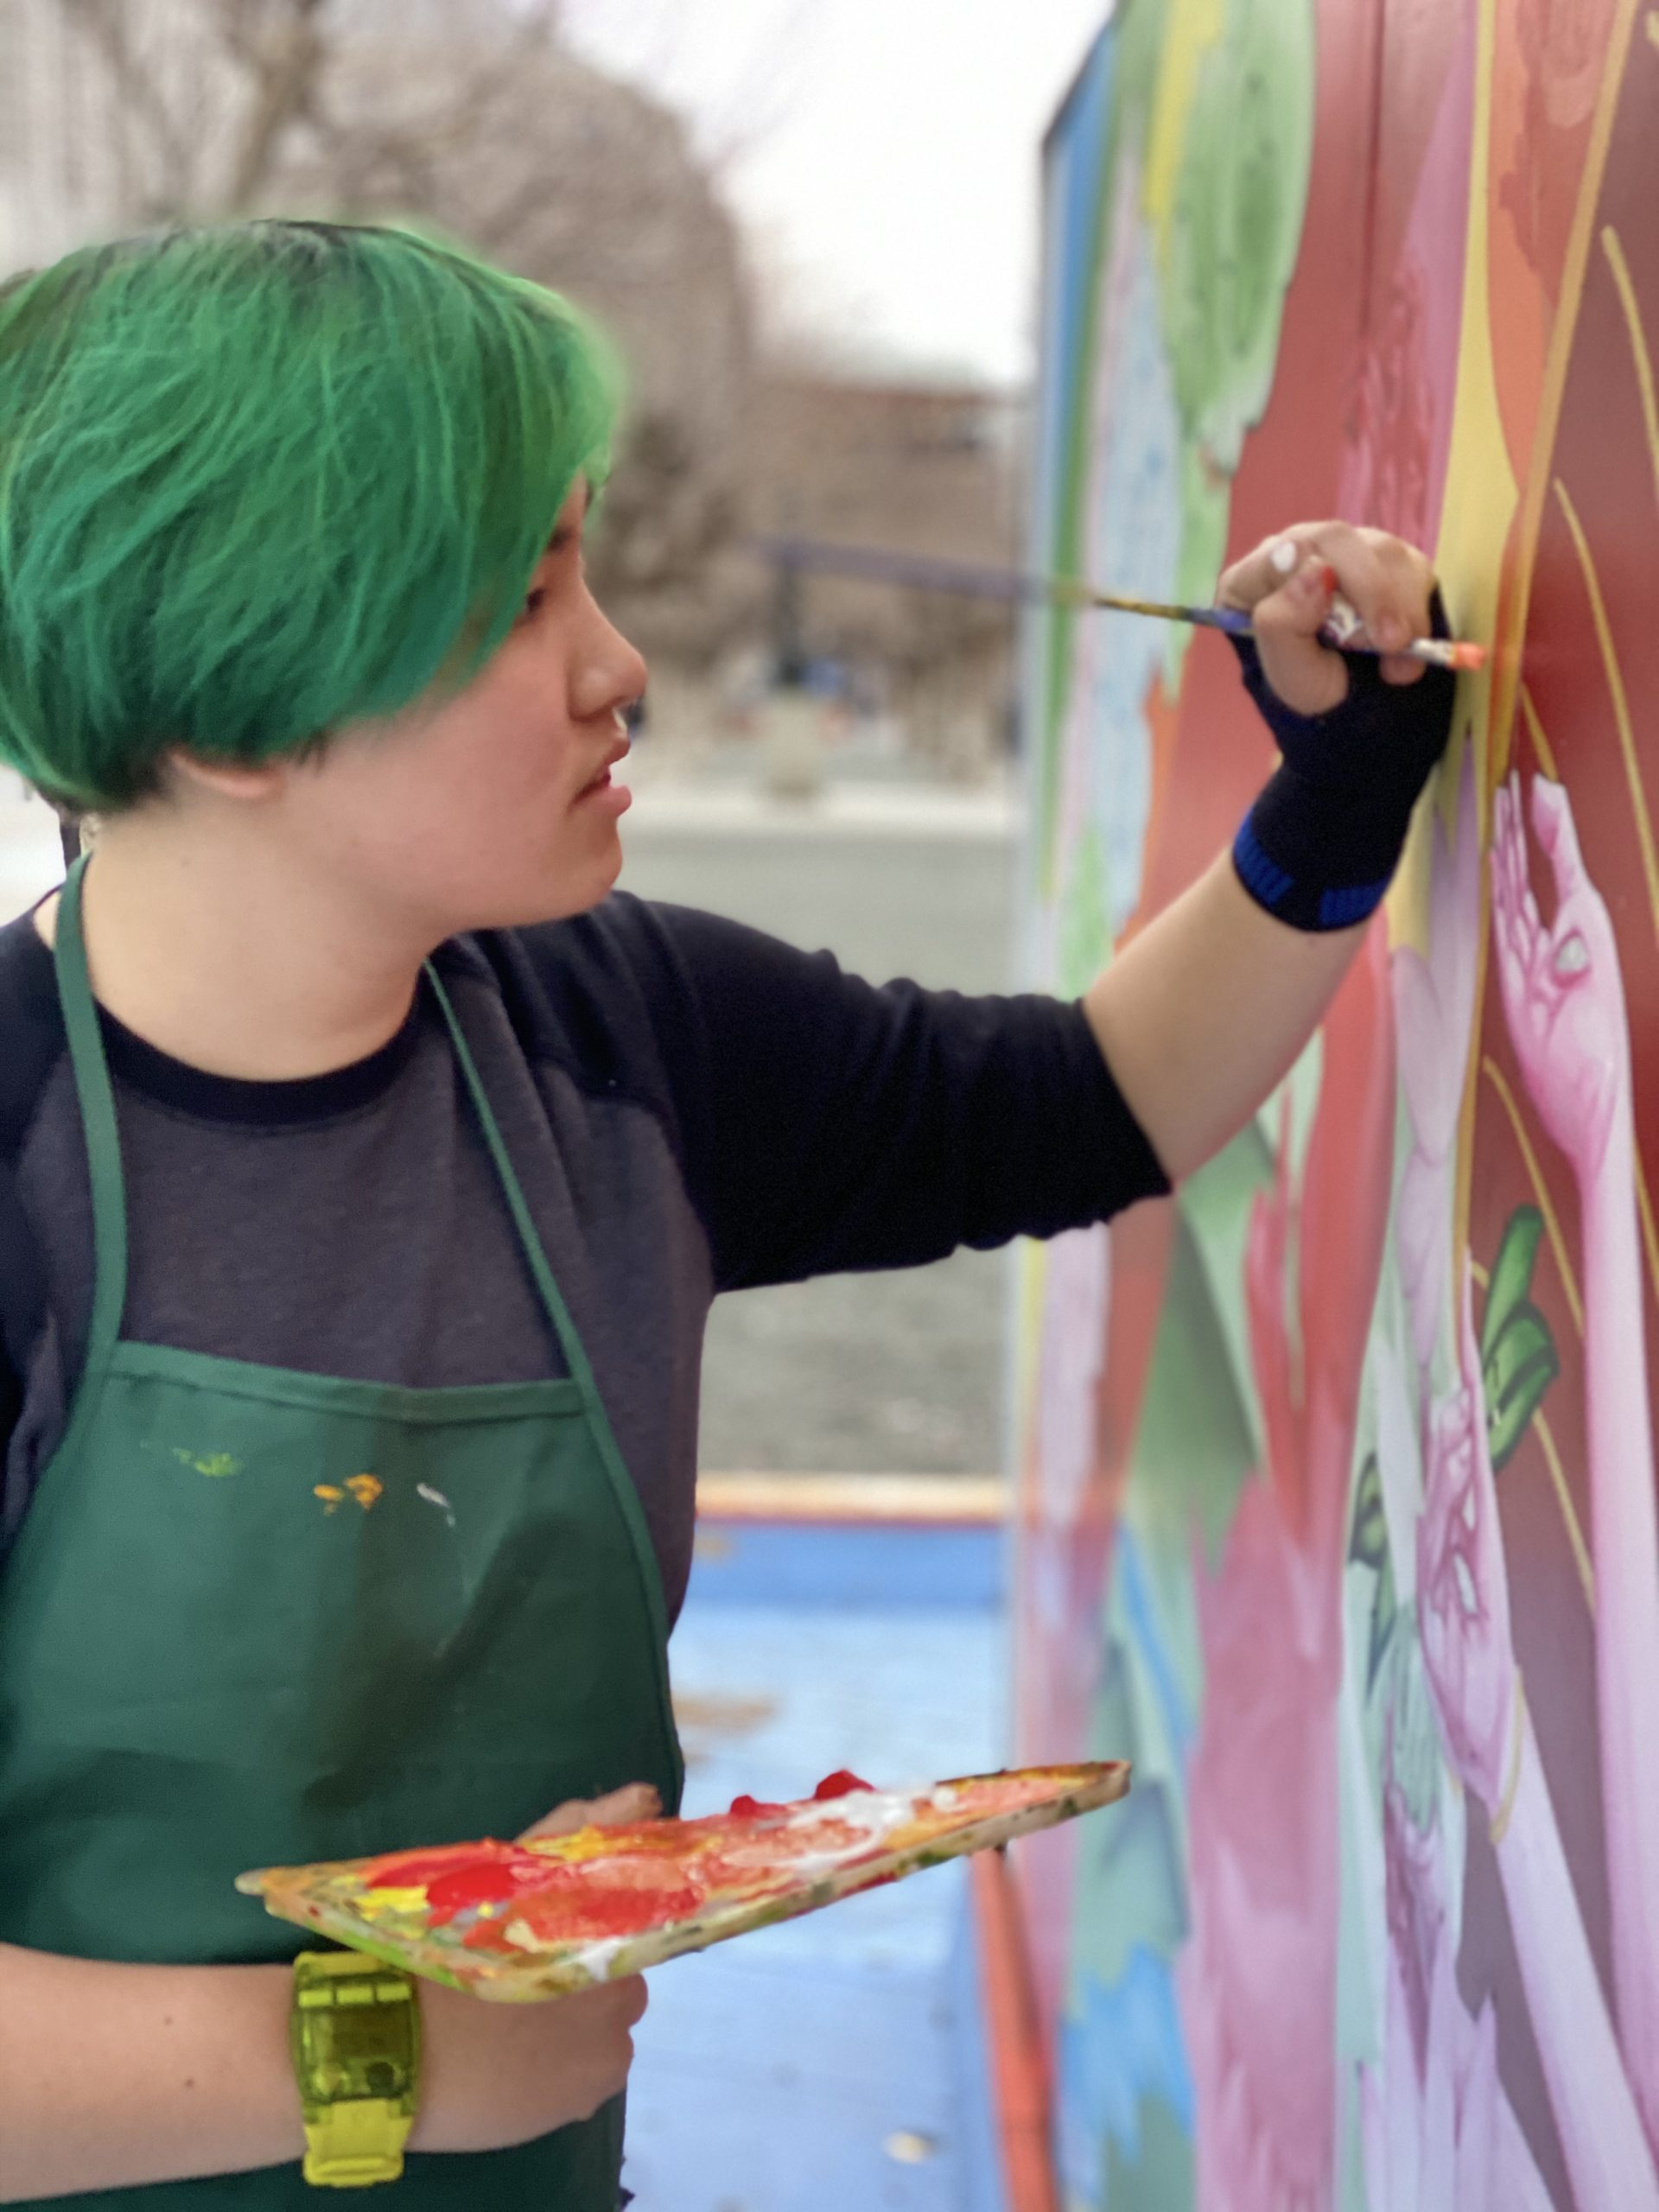 An artist with short green hair paints a colorful mural.